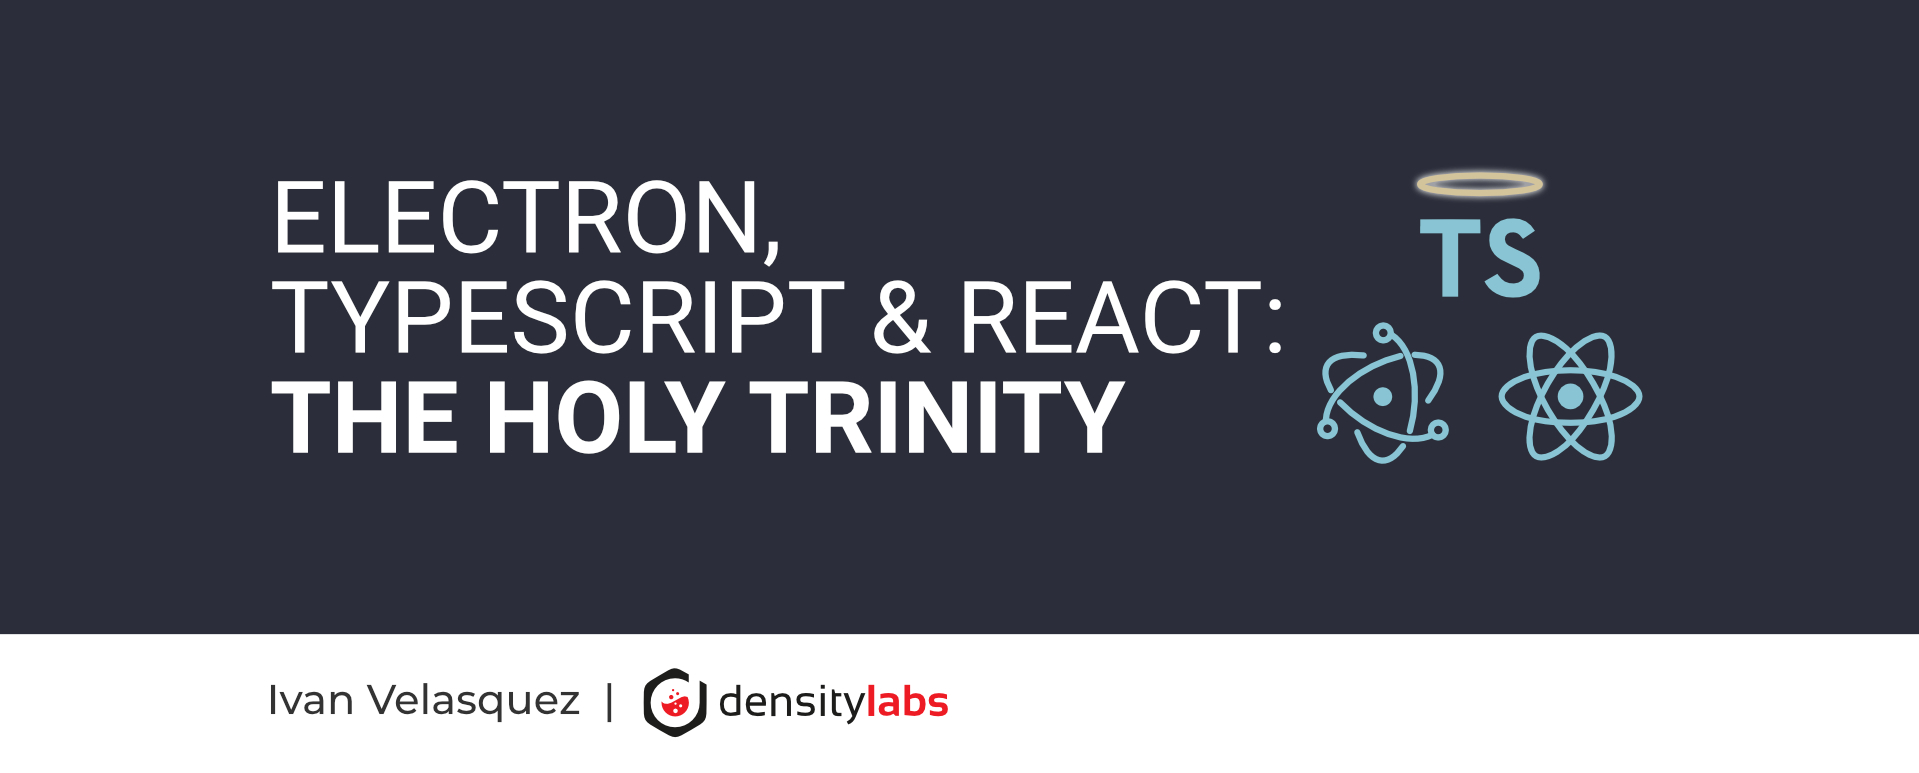 Electron, TypeScript & React - The Holy Trinity